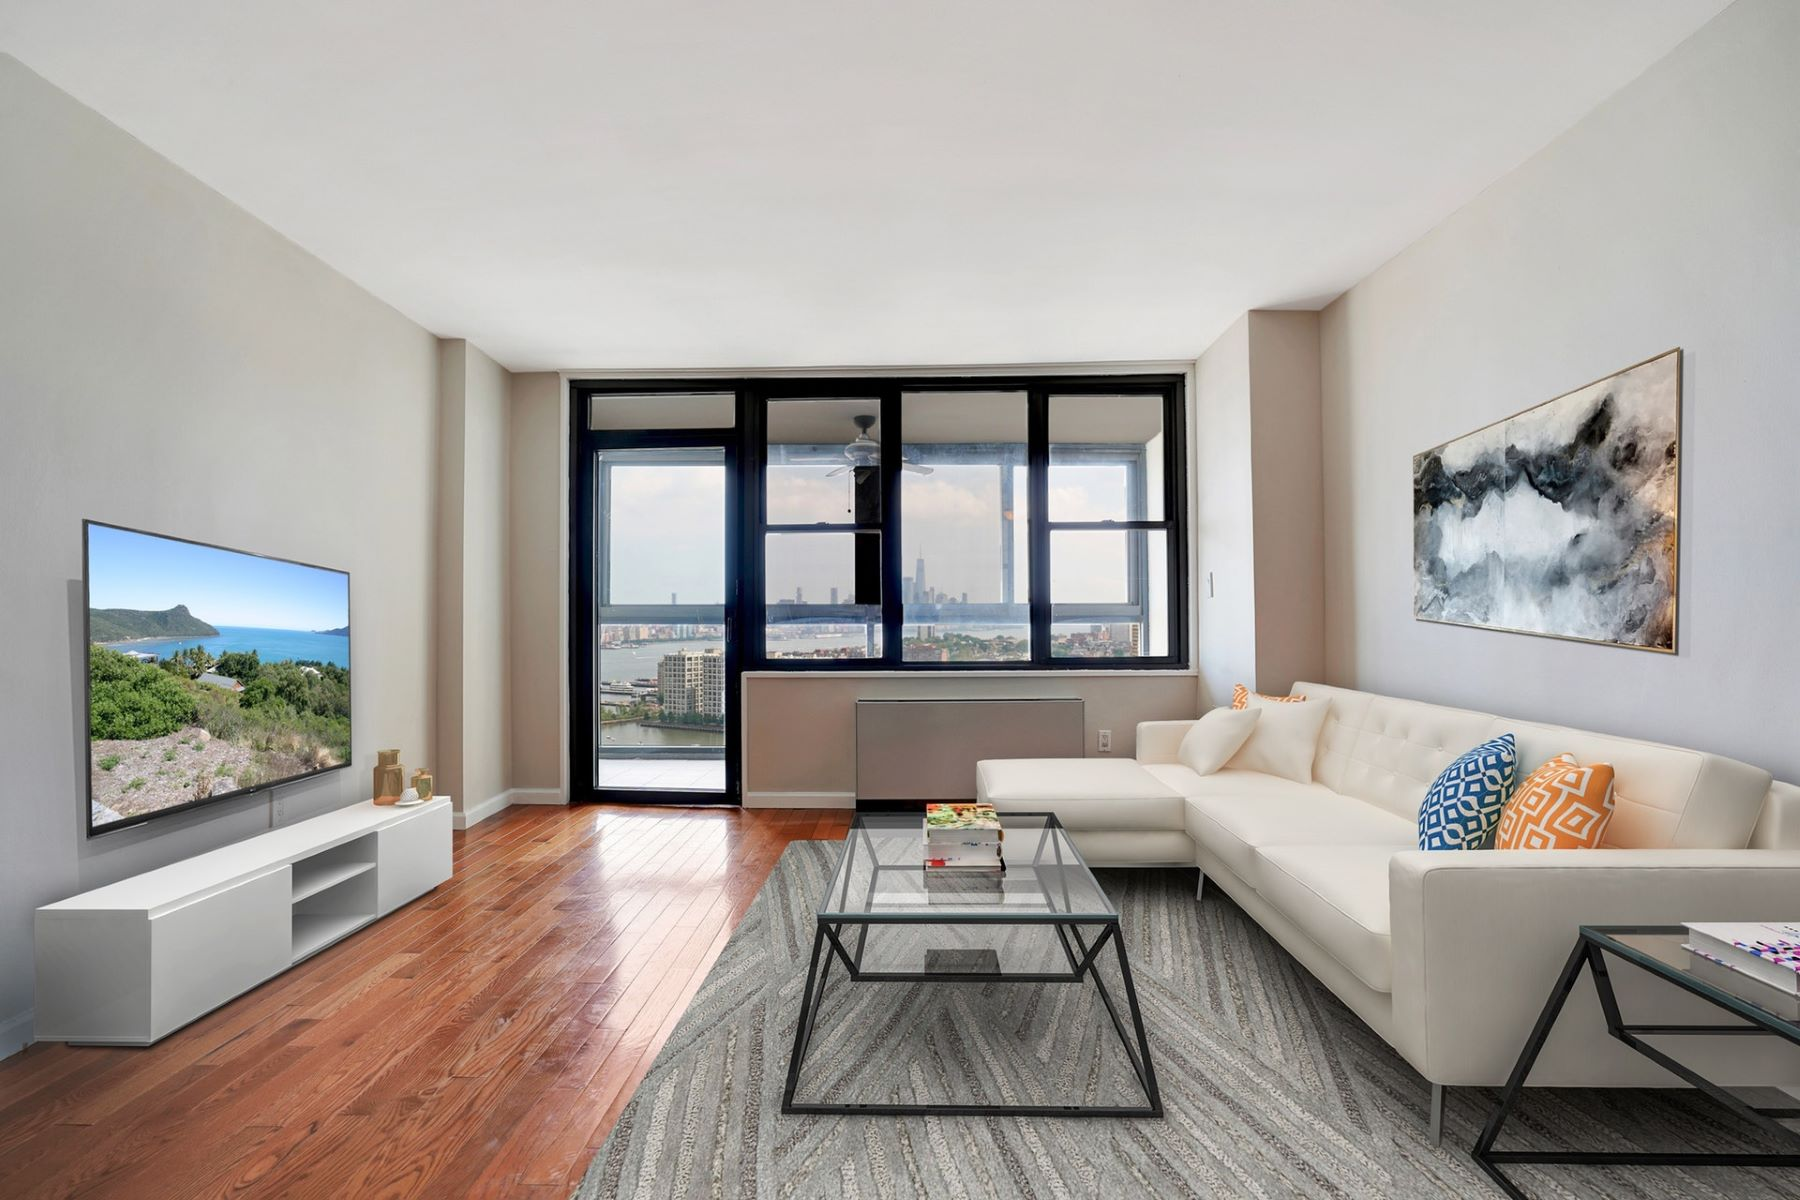 Co-op Properties for Sale at Luxury high rise along the cliffs of Union City at Troy Towers 380 Mountain Rd #1211, Union City, New Jersey 07087 United States